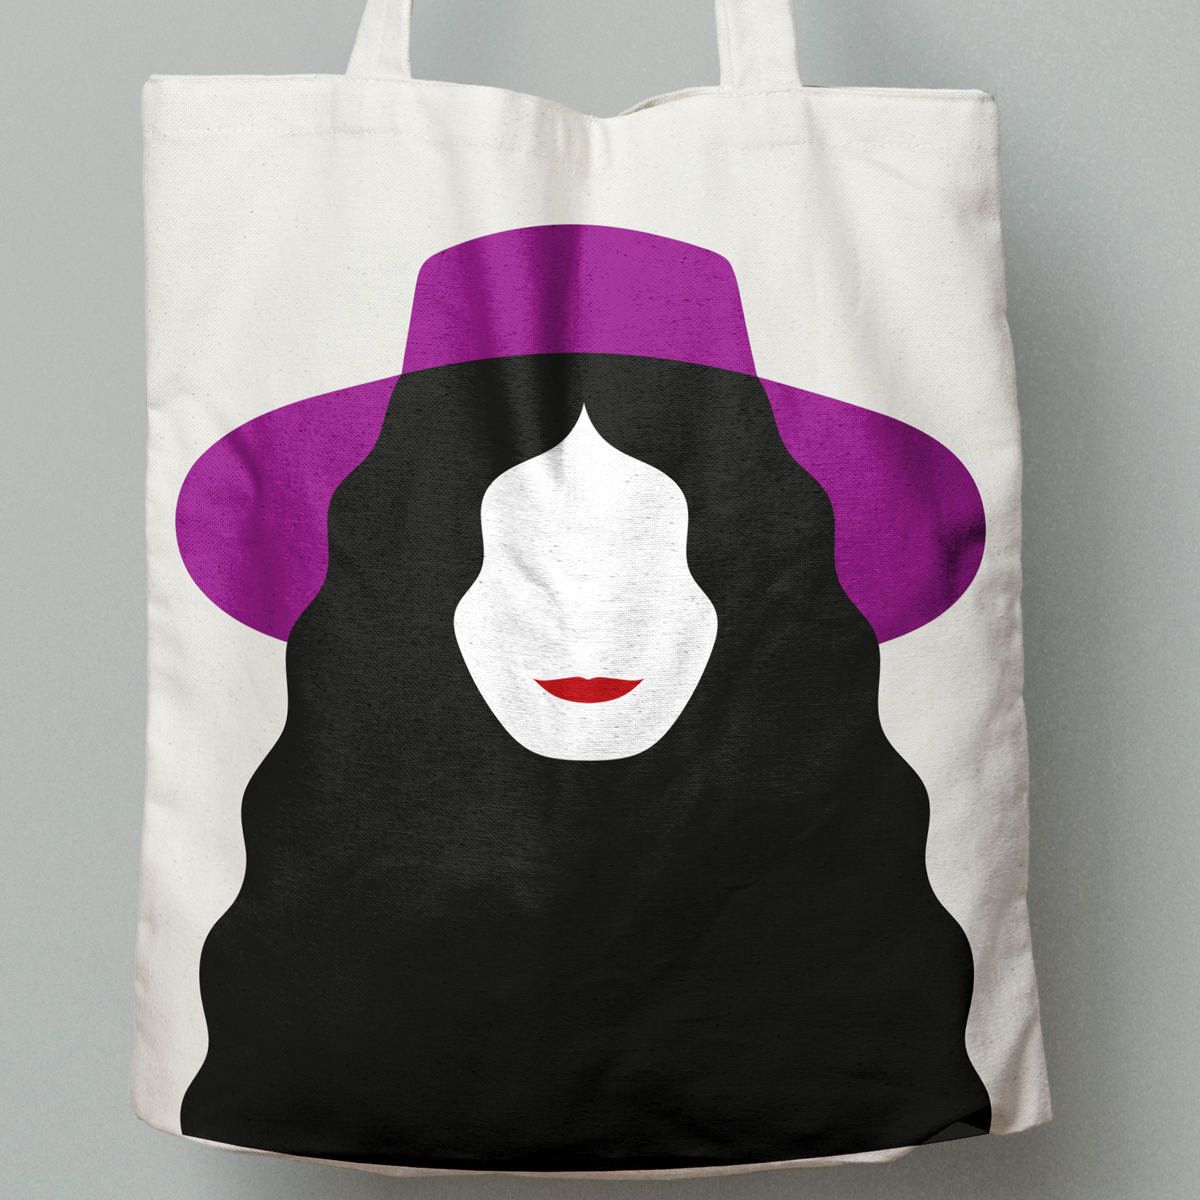 Image of suONO Tote bag Limited edition (Artwork by Olimpia Zagnoli)